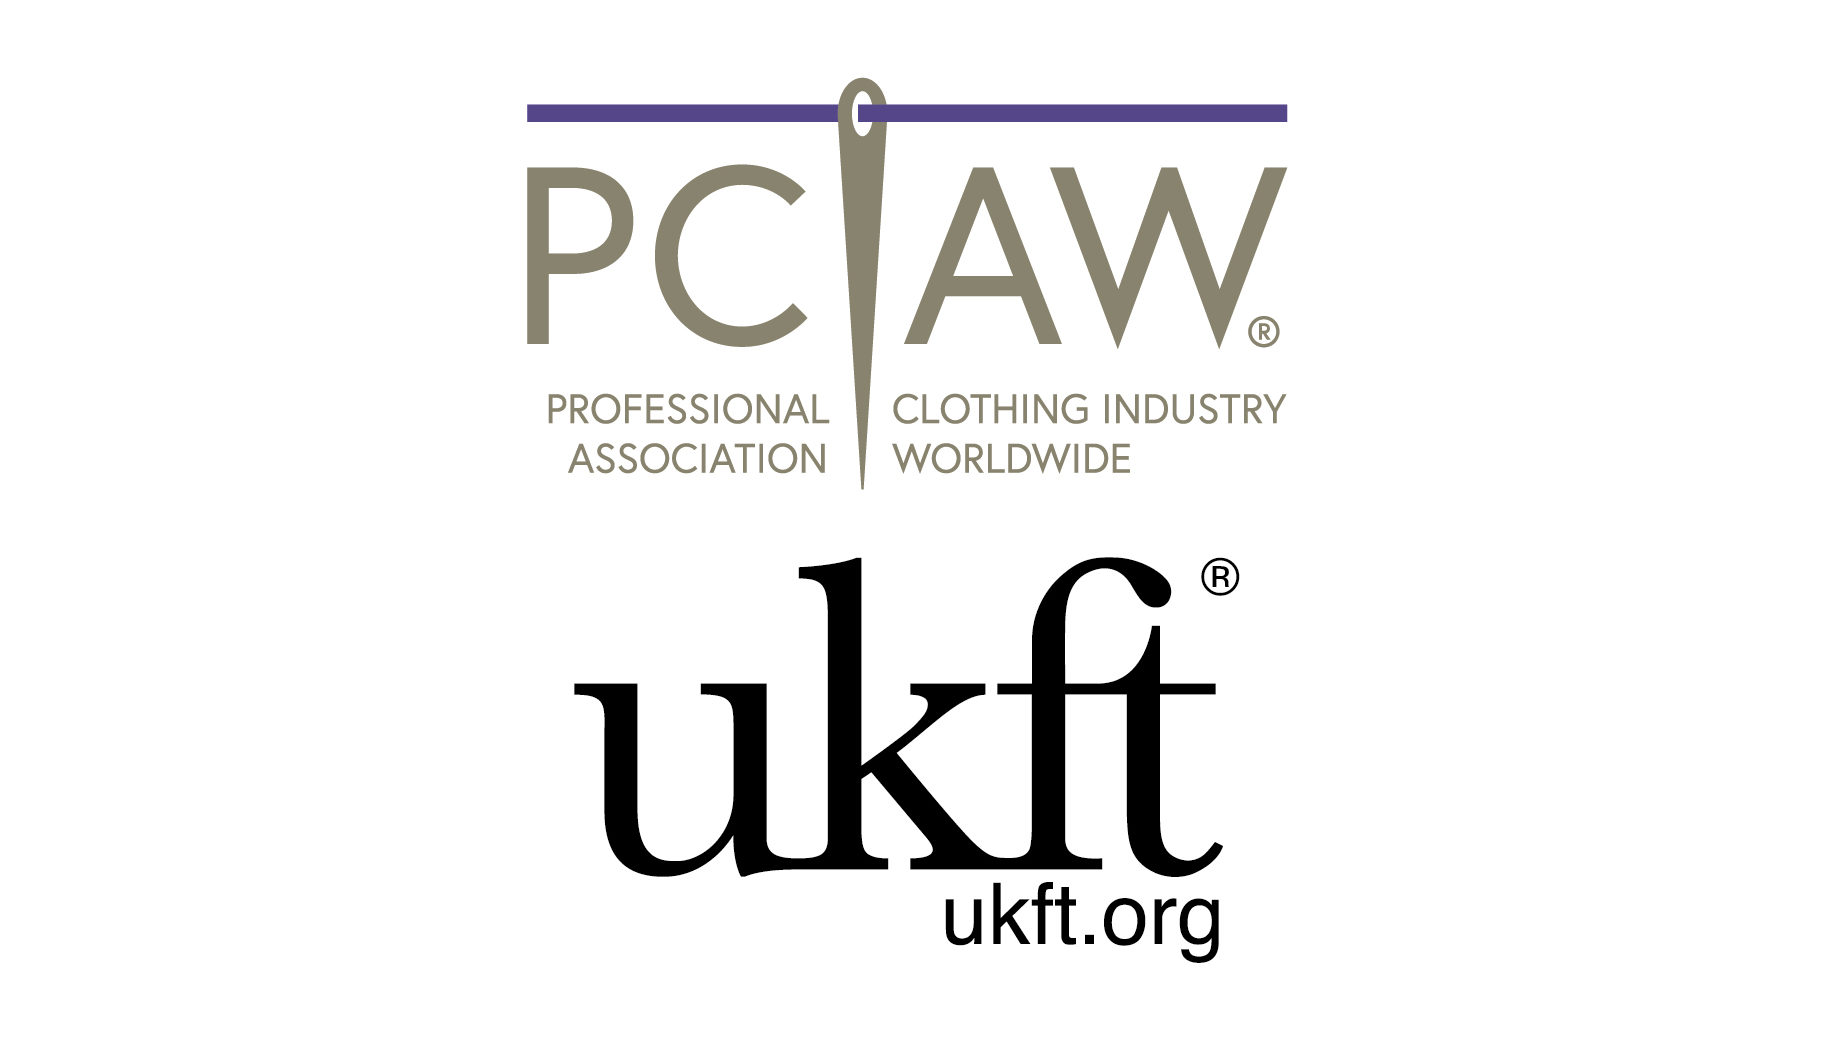 PCIAW brexit questions